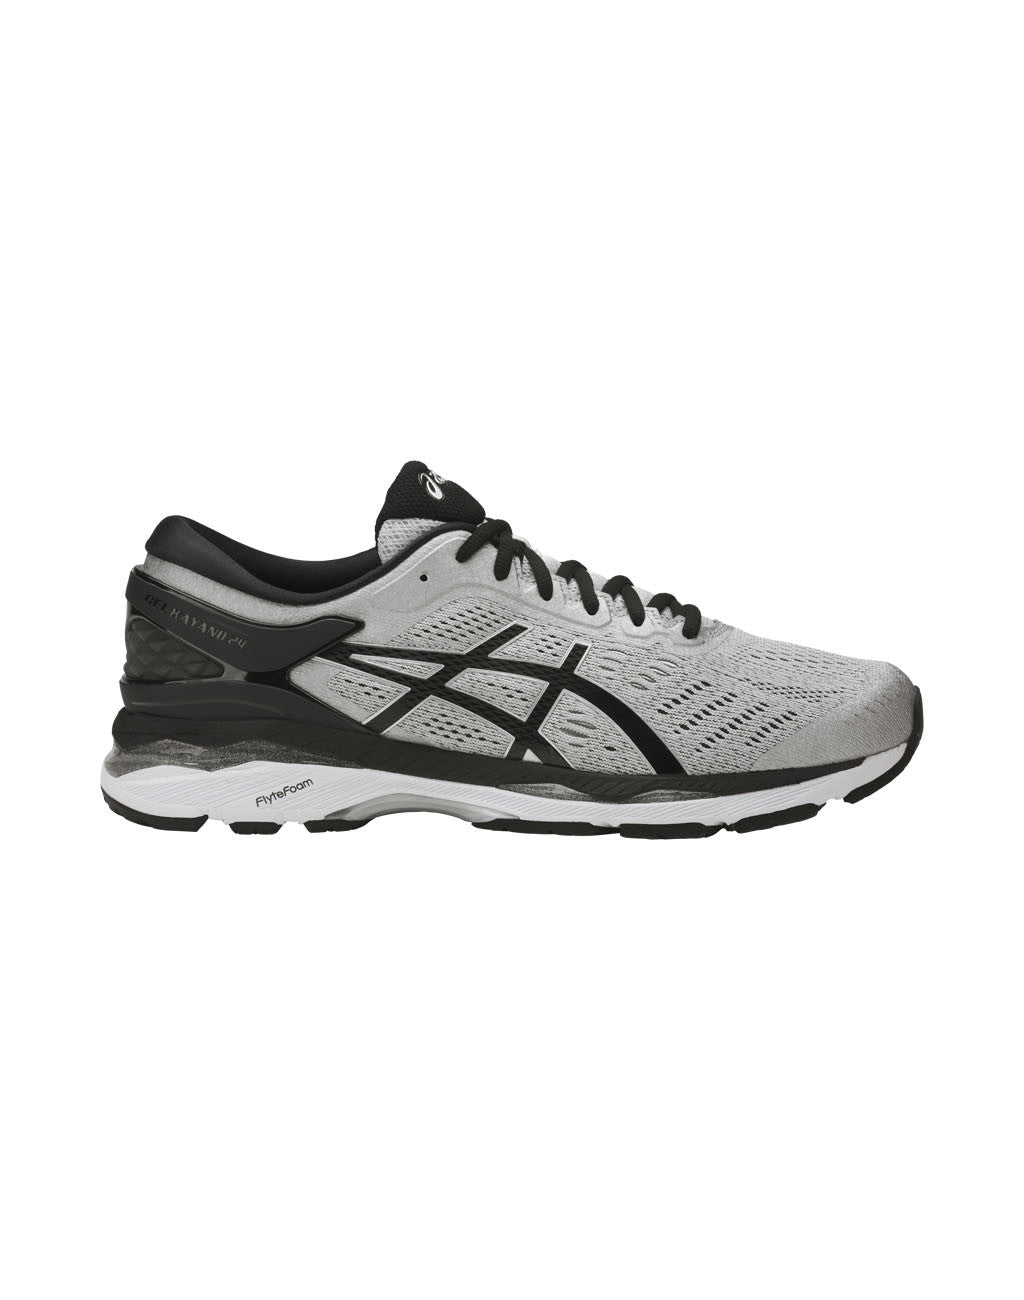 ASICS GEL-Kayano 24 (Extra Wide - 4E) (Men's)8_master_image